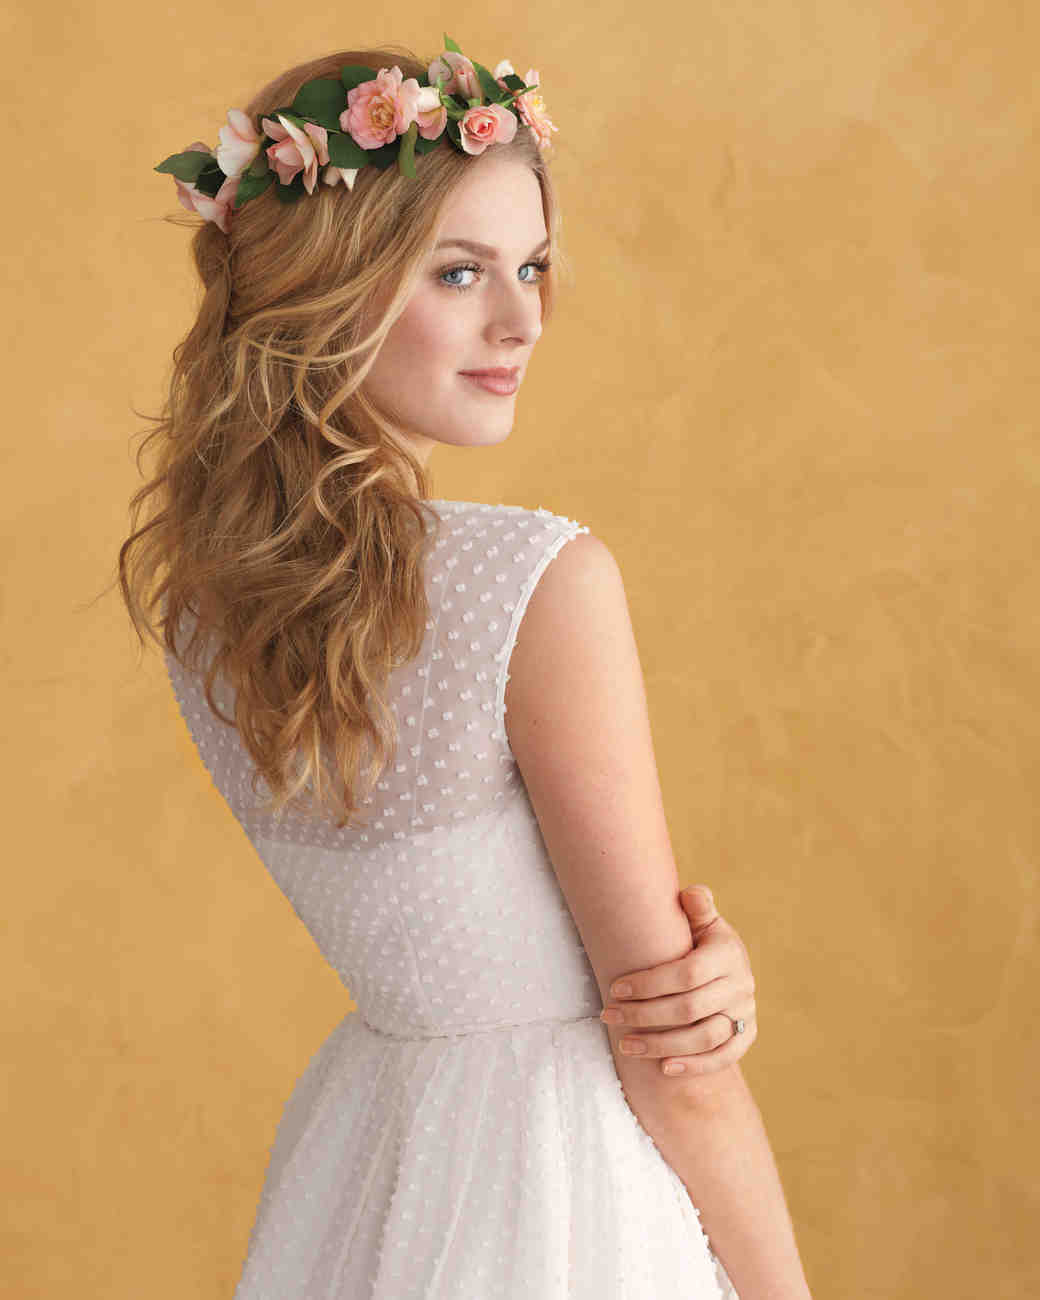 hair flower style floral wedding hairstyles martha stewart weddings 4388 | hair flowers model opener 091 mwd109799 vert